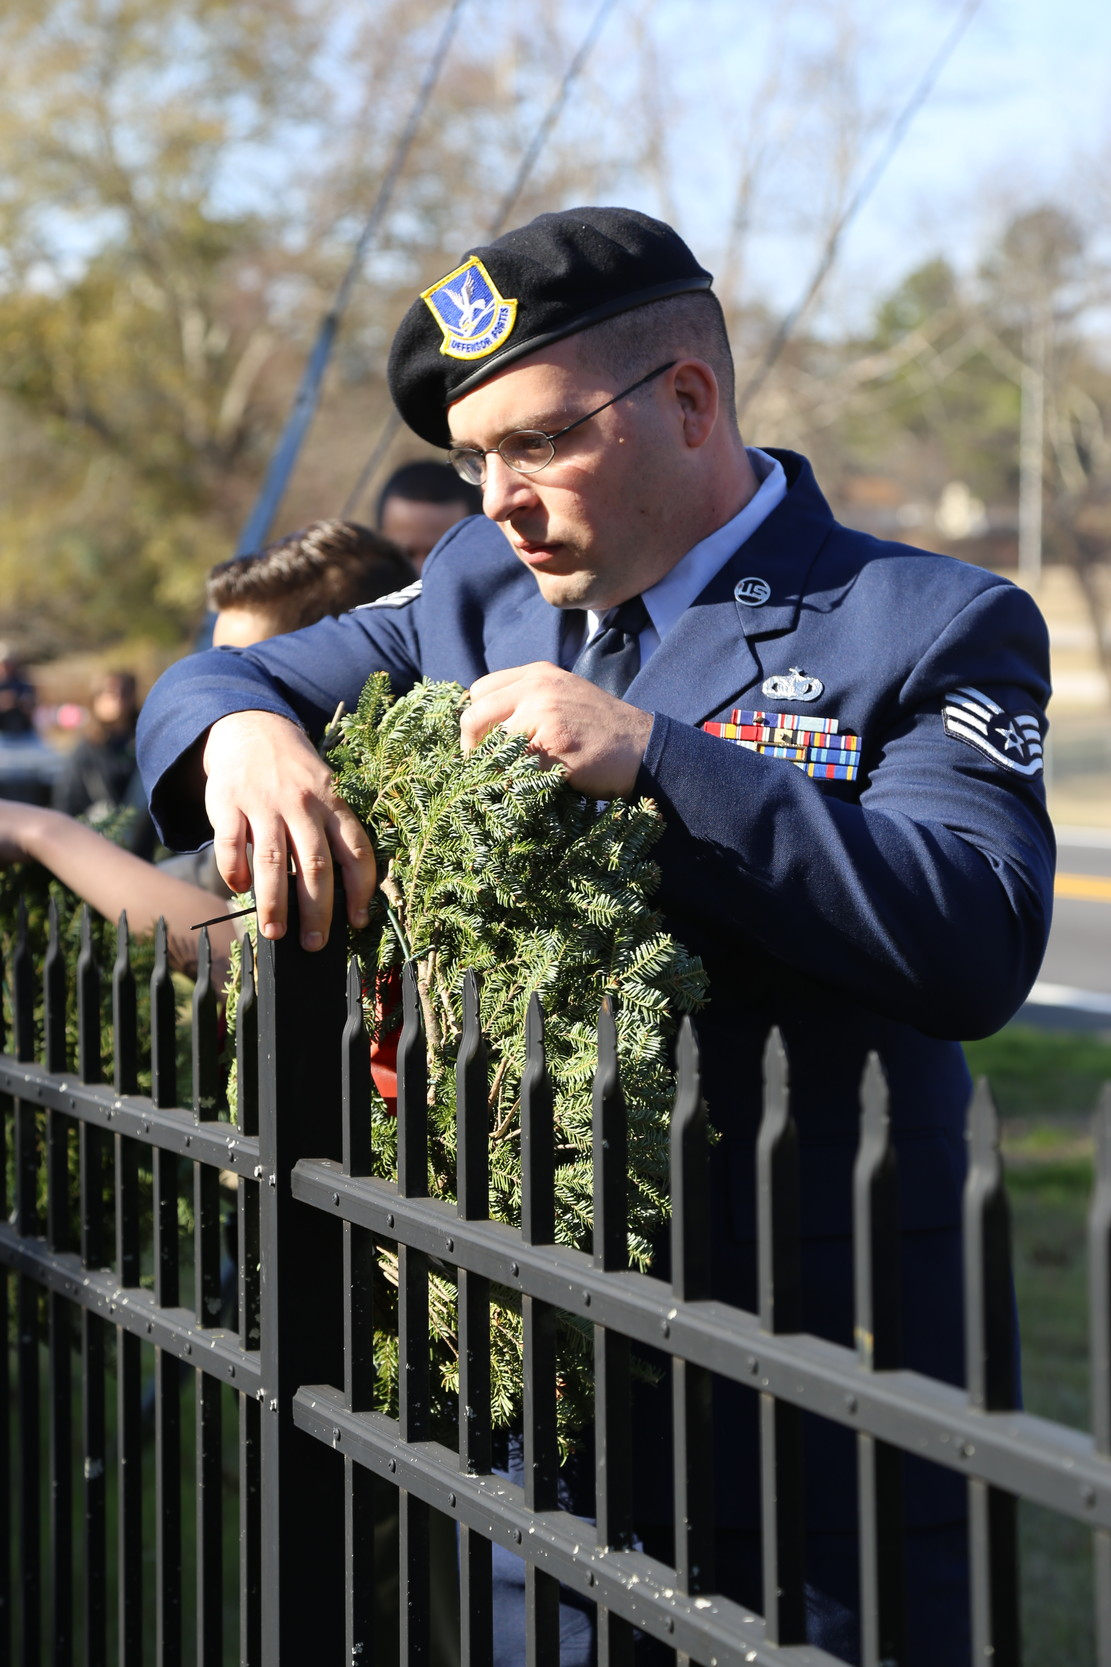 Local Civil Air Patrol cadets, Girl Scout troops, Boy Scout troops and others in the Sumter community decorated